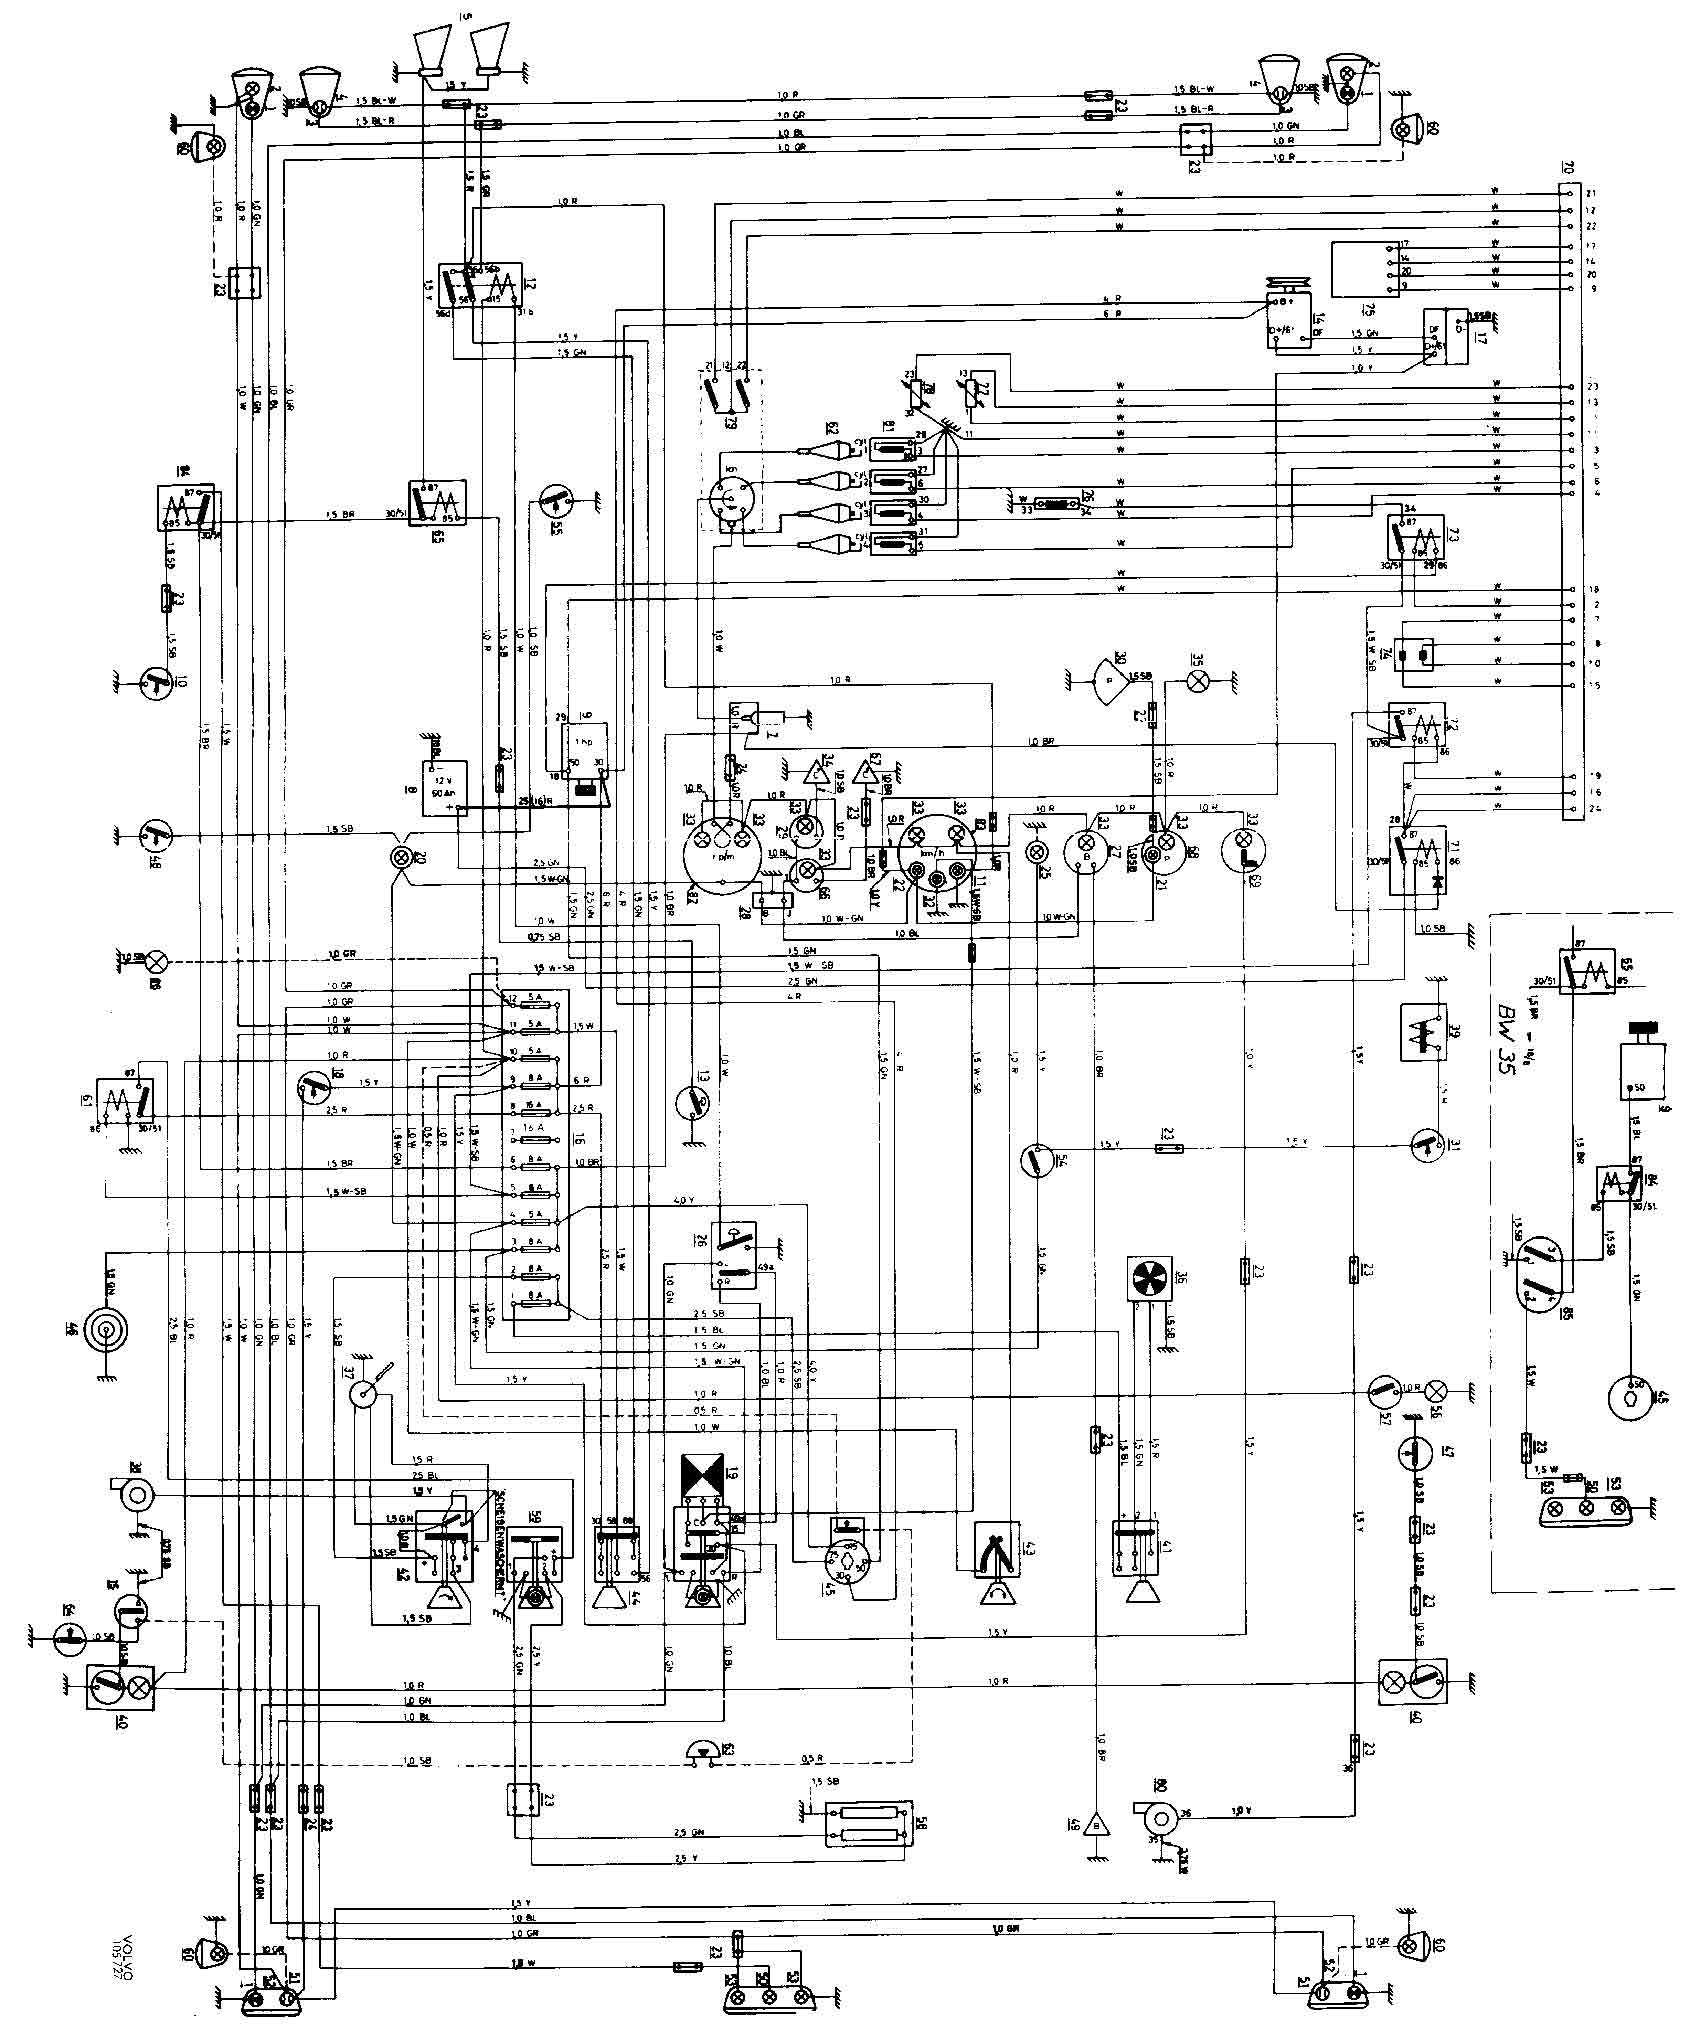 lincoln electric welder wiring diagram